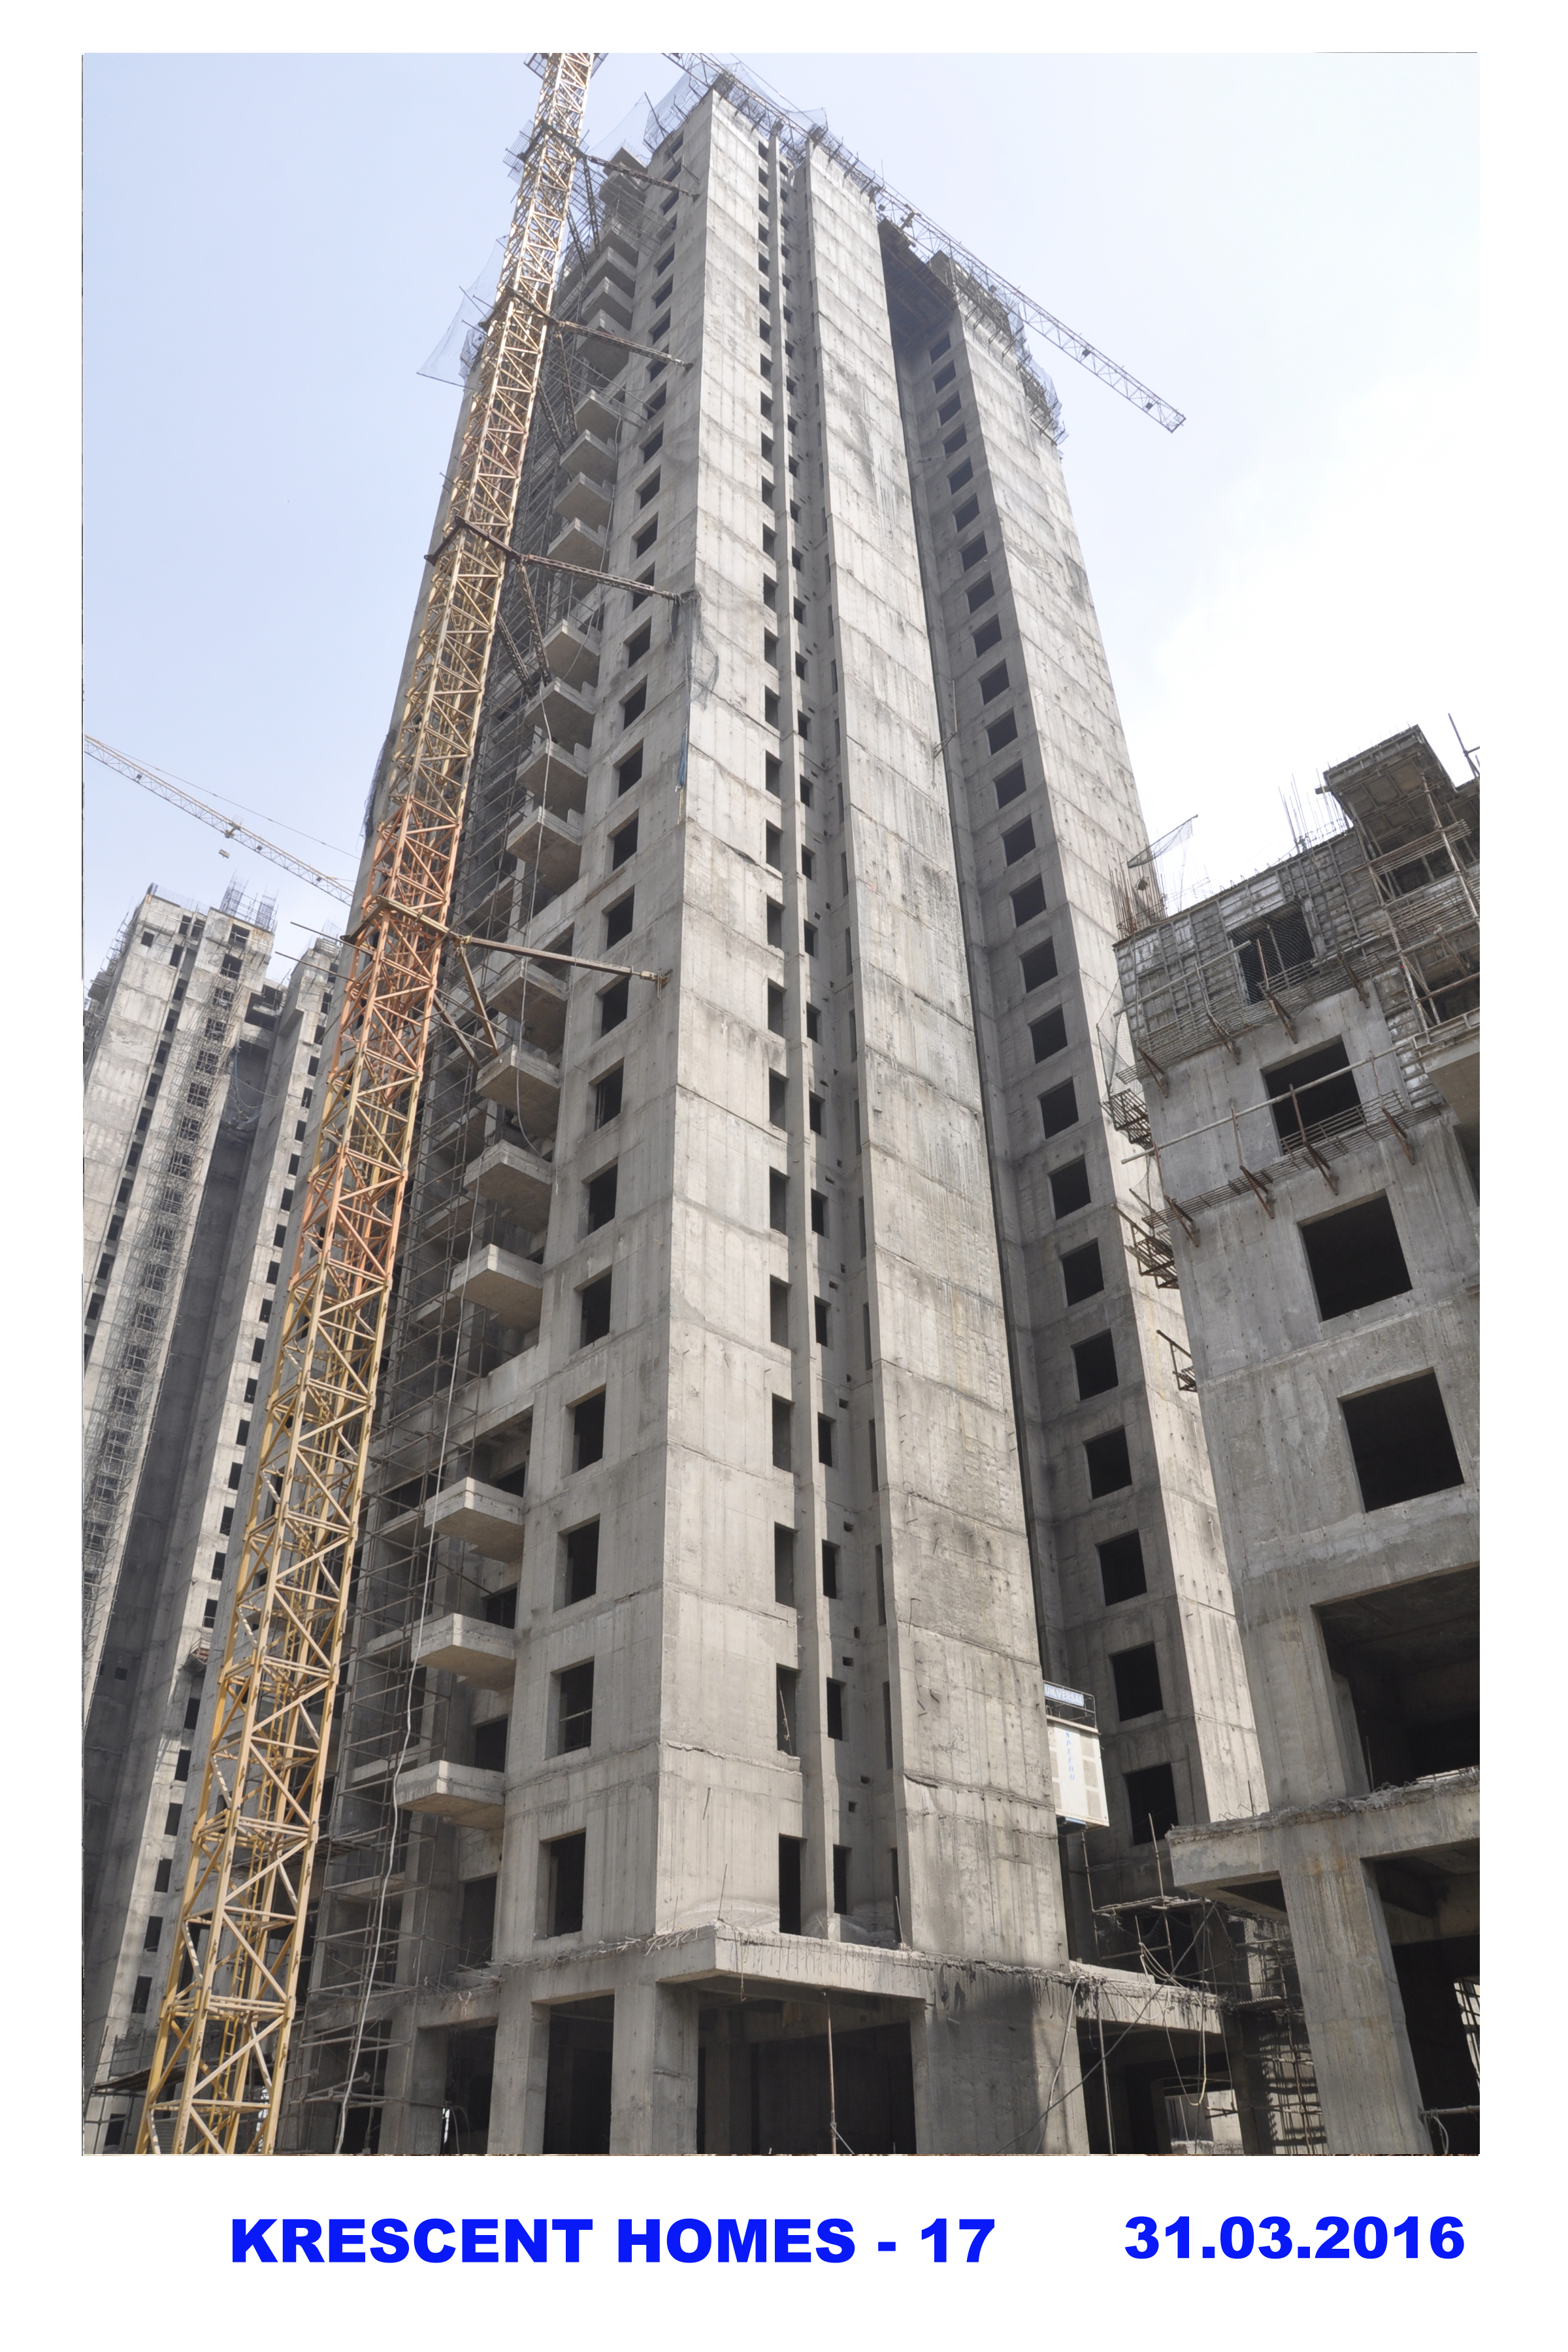 Krescent Homes Tower - 17